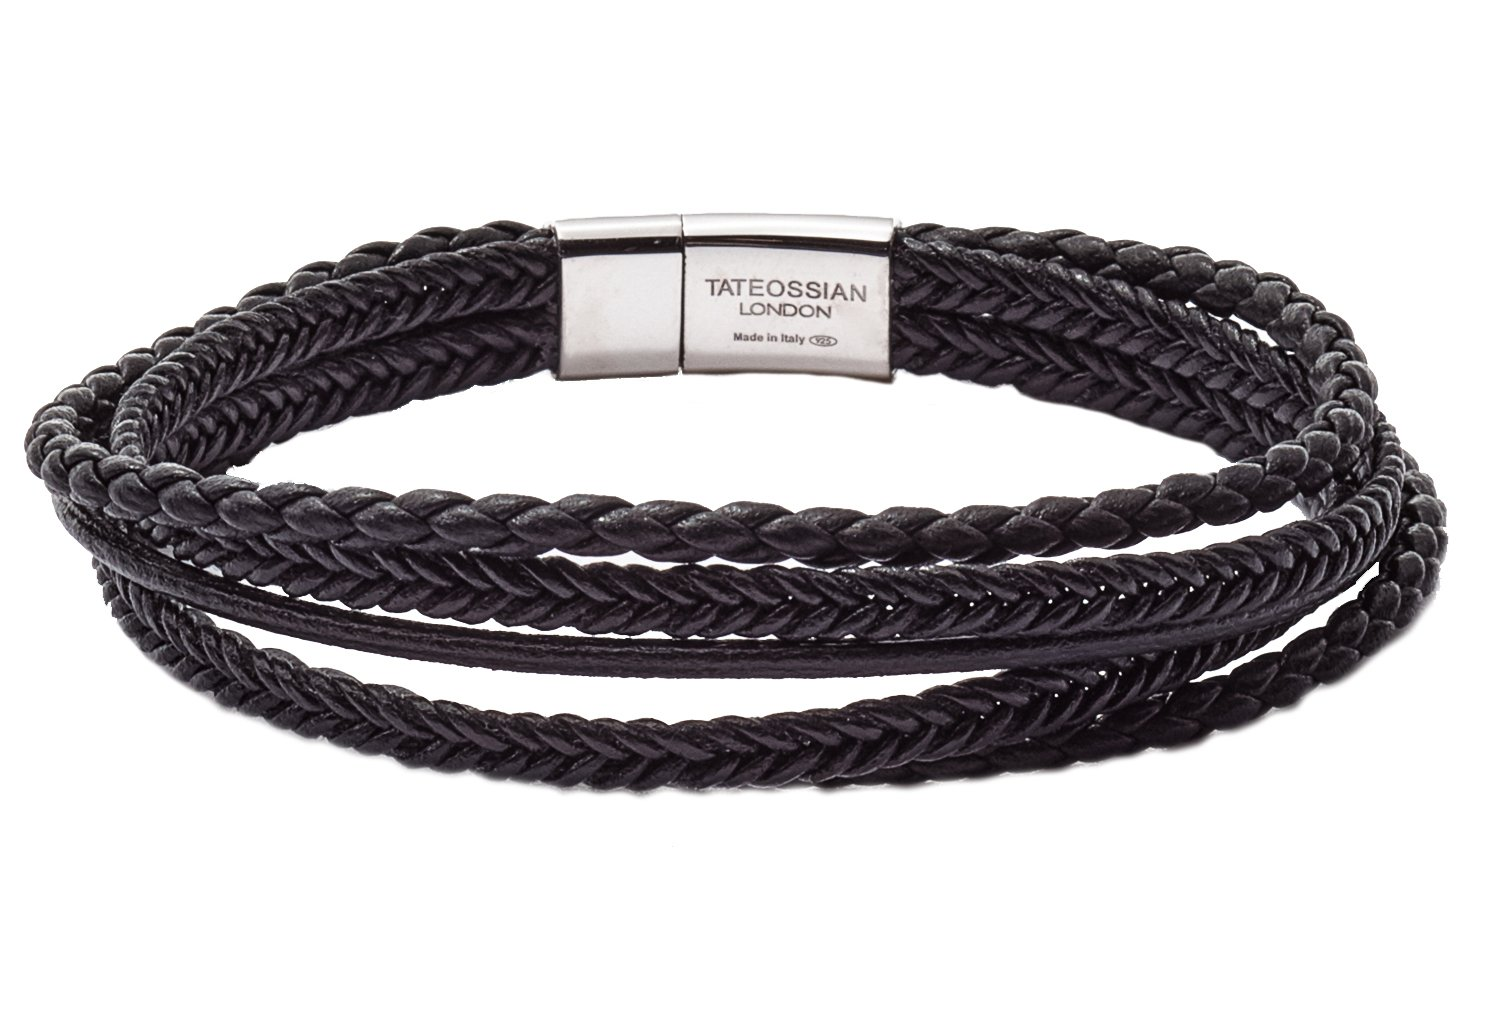 Tateossian Cobra Italian Leather Multi Strand Bracelet - Black, Medium 18cm